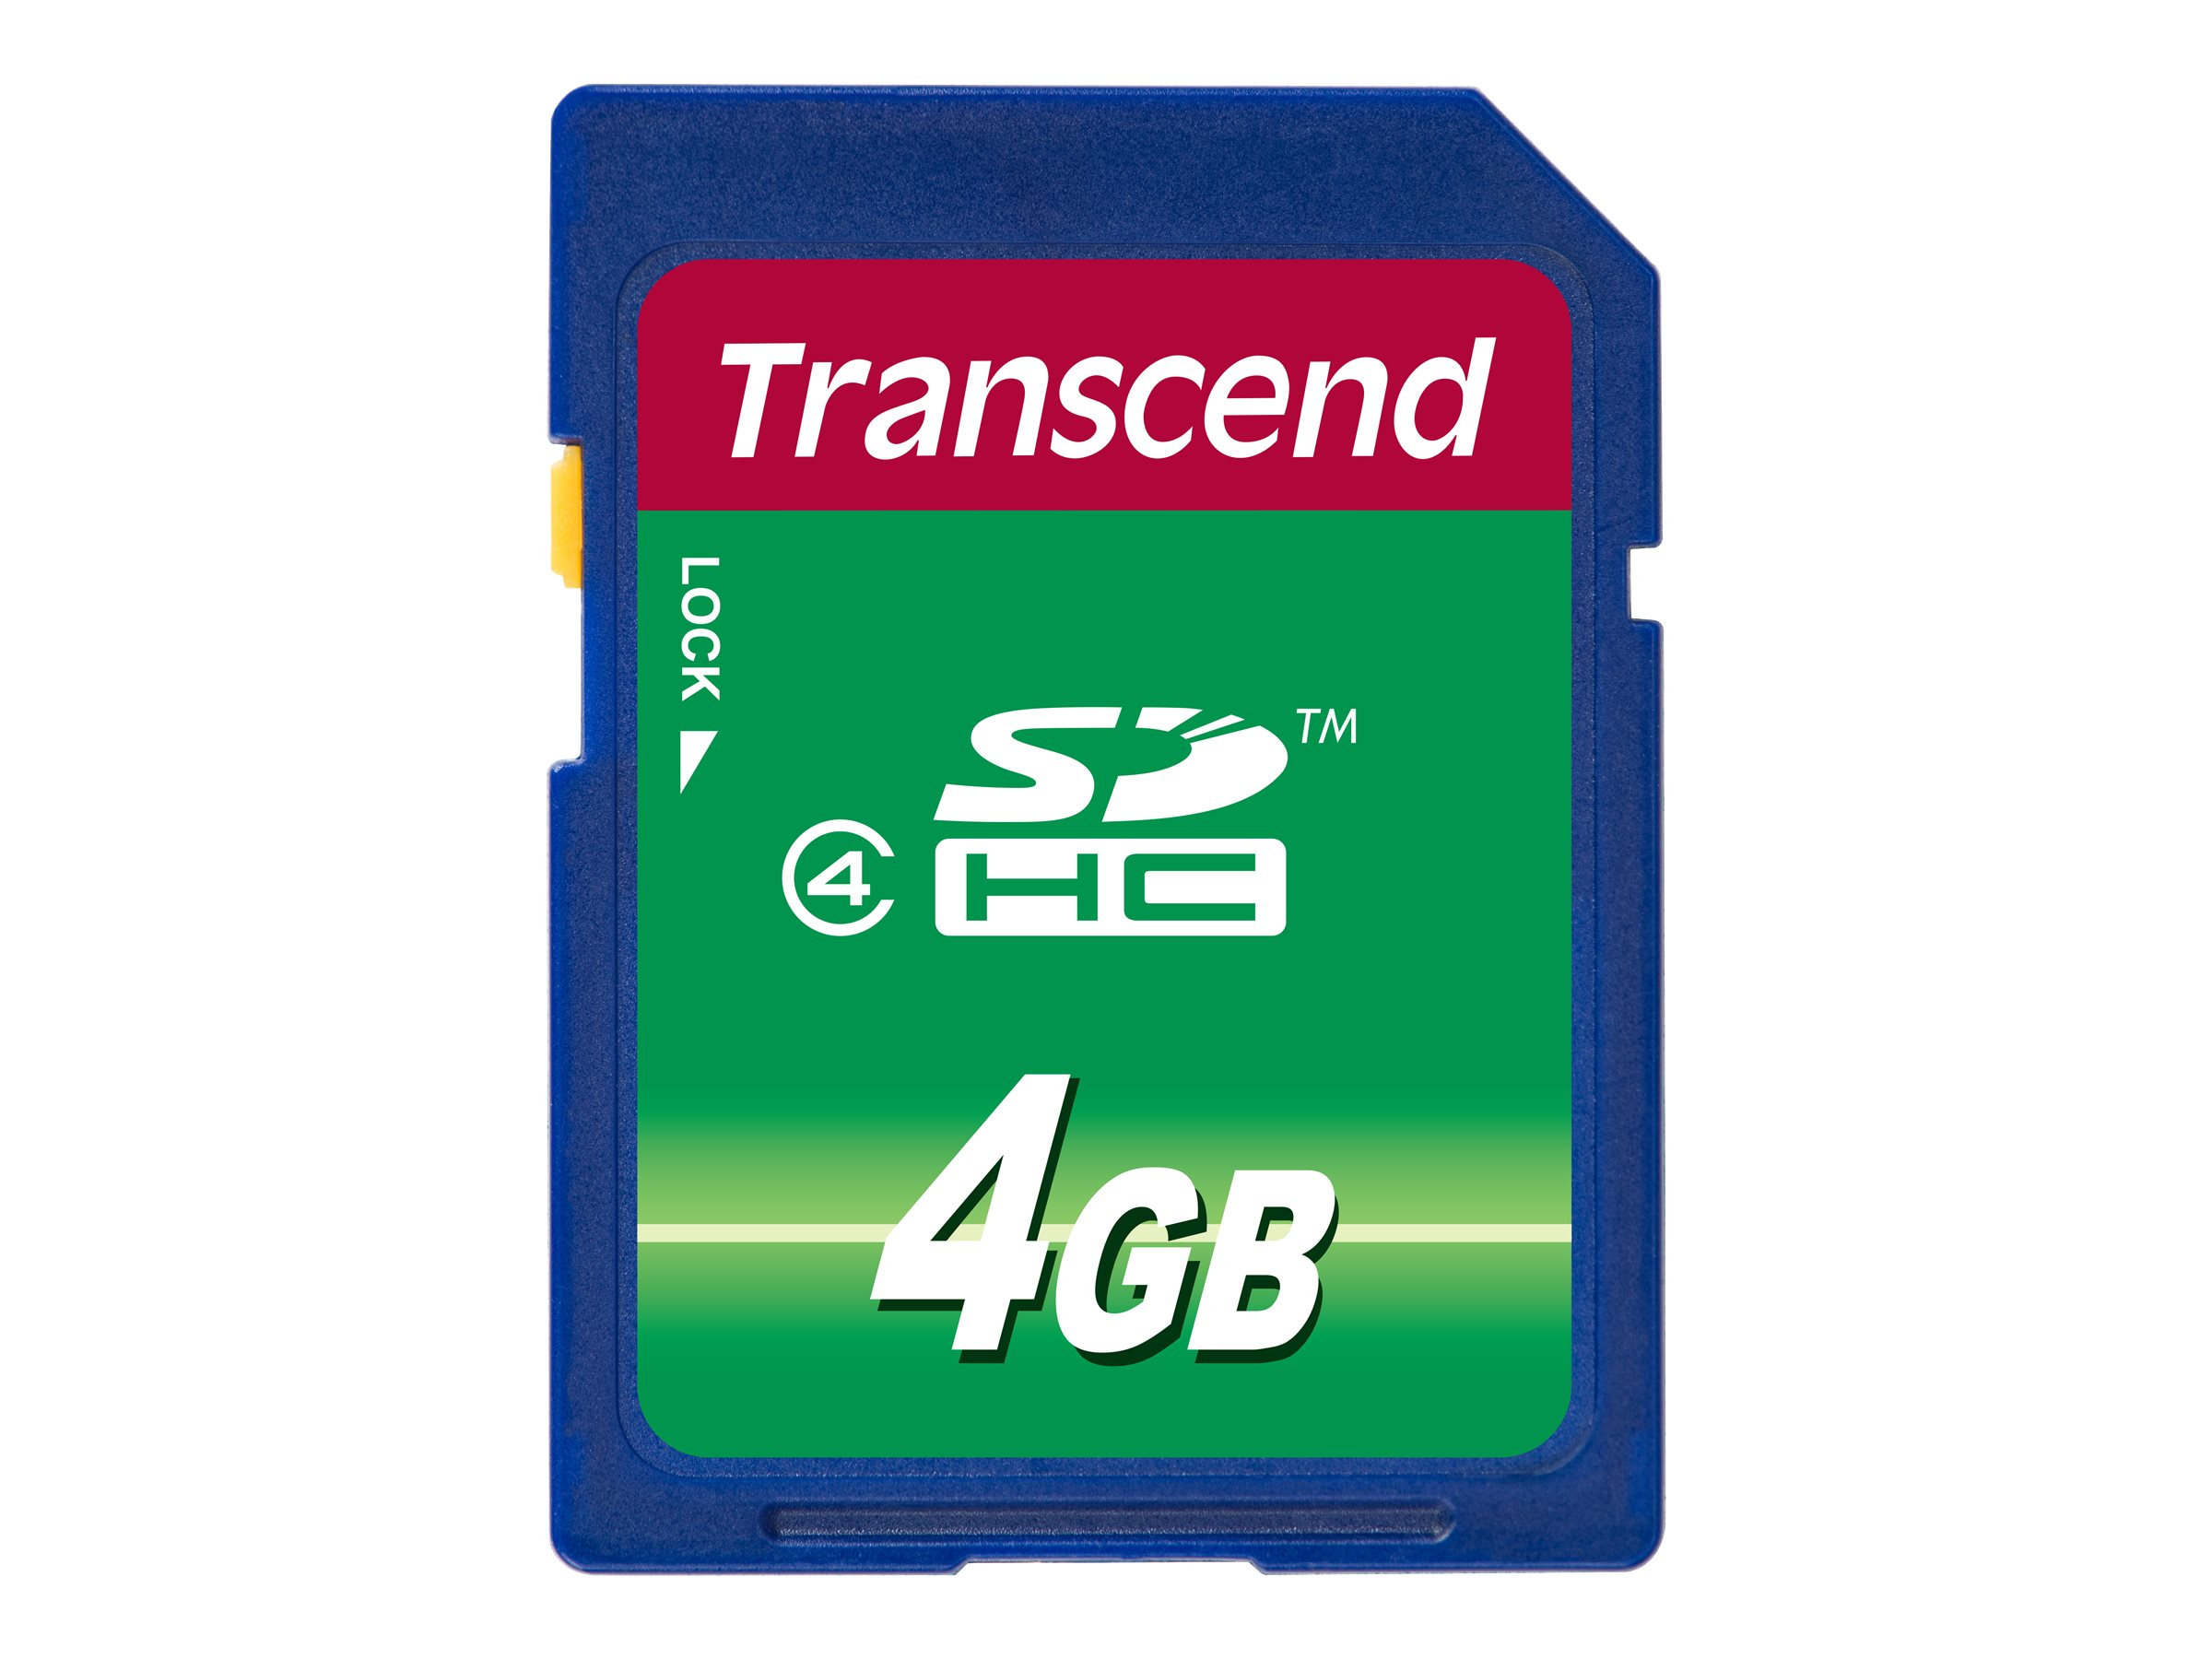 Transcend - Flash-Speicherkarte - 4 GB - Class 4 - SDHC